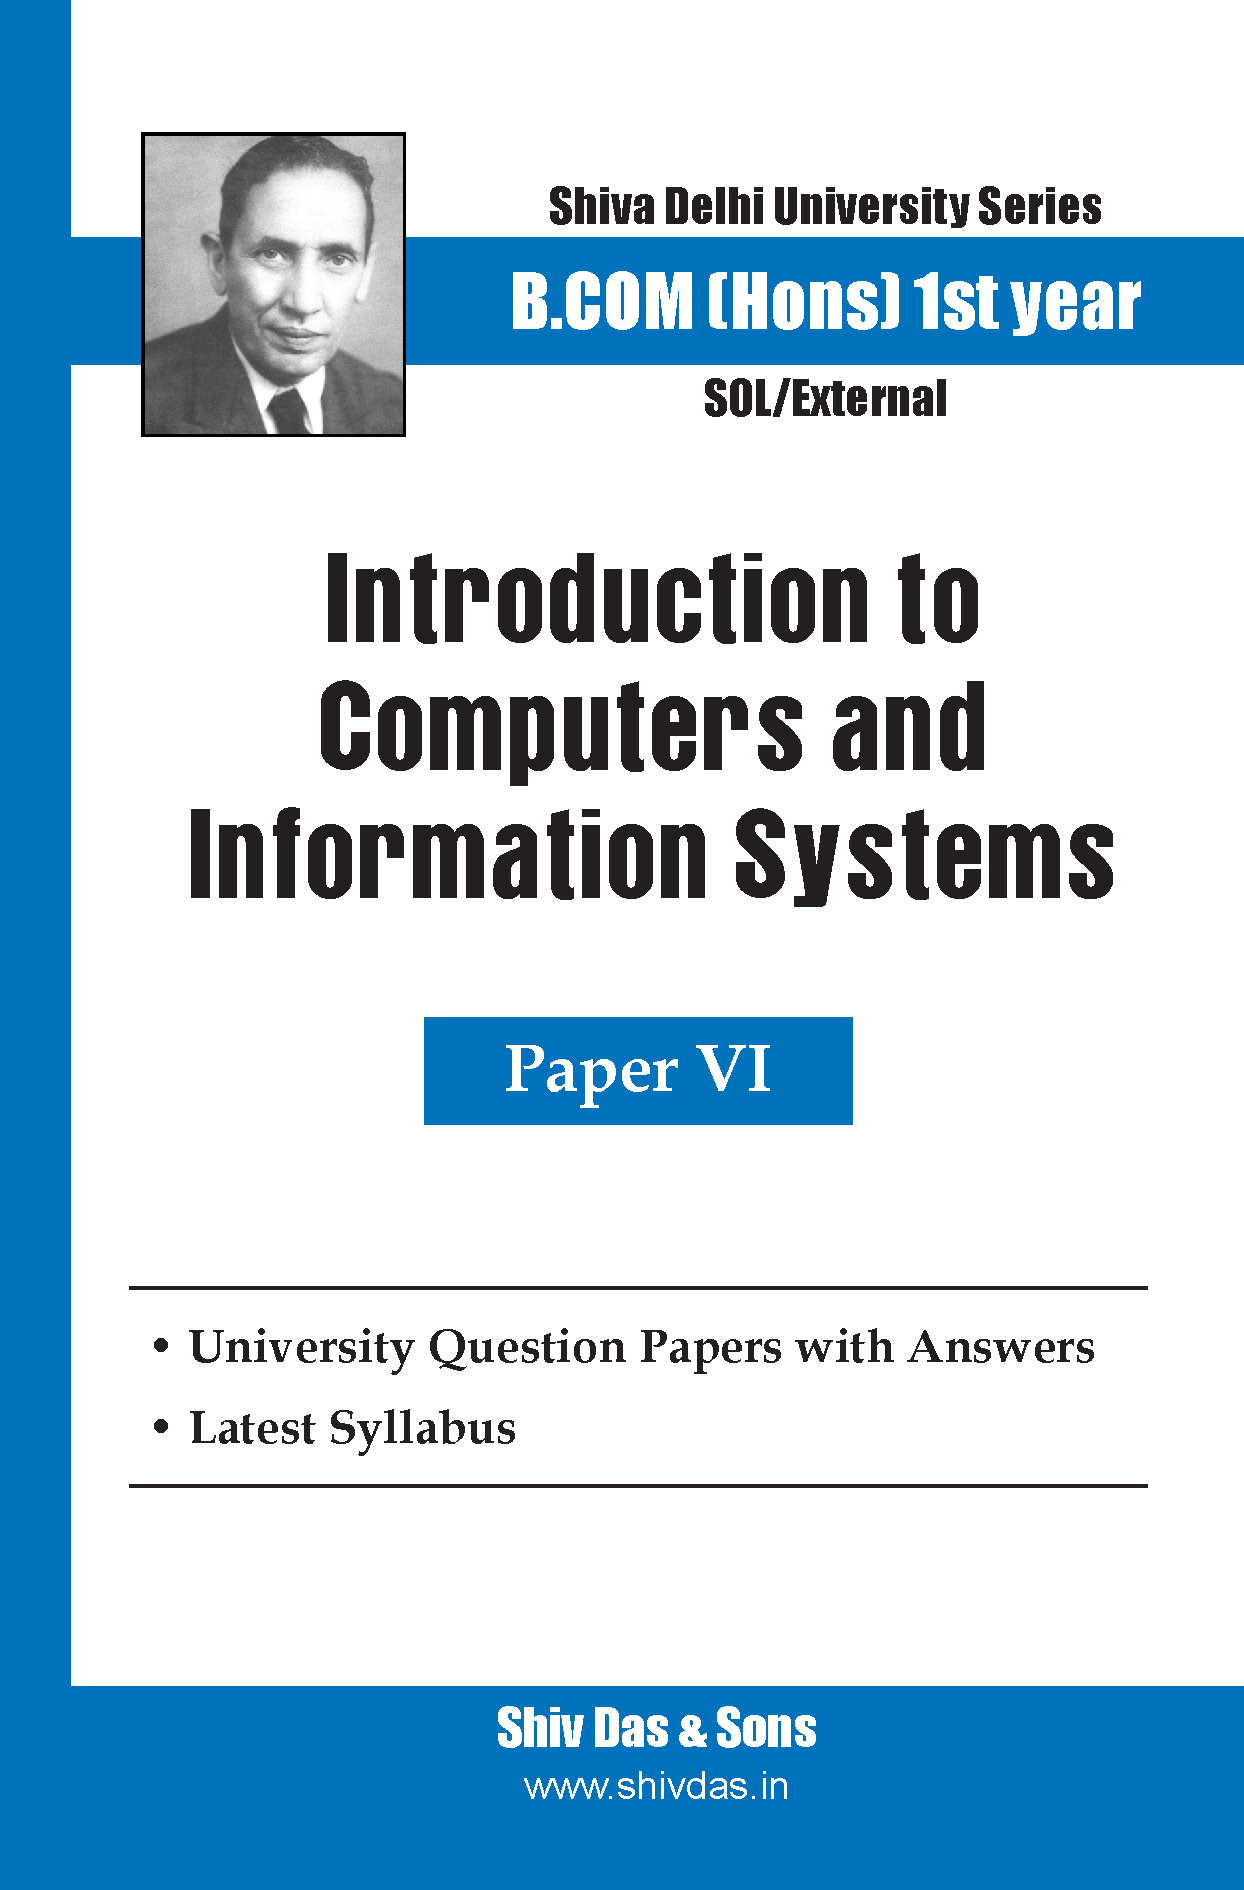 B.Com Hons-SOL/External-1st Year Introduction to Computers and Information System-Shiv Das-Delhi University Series